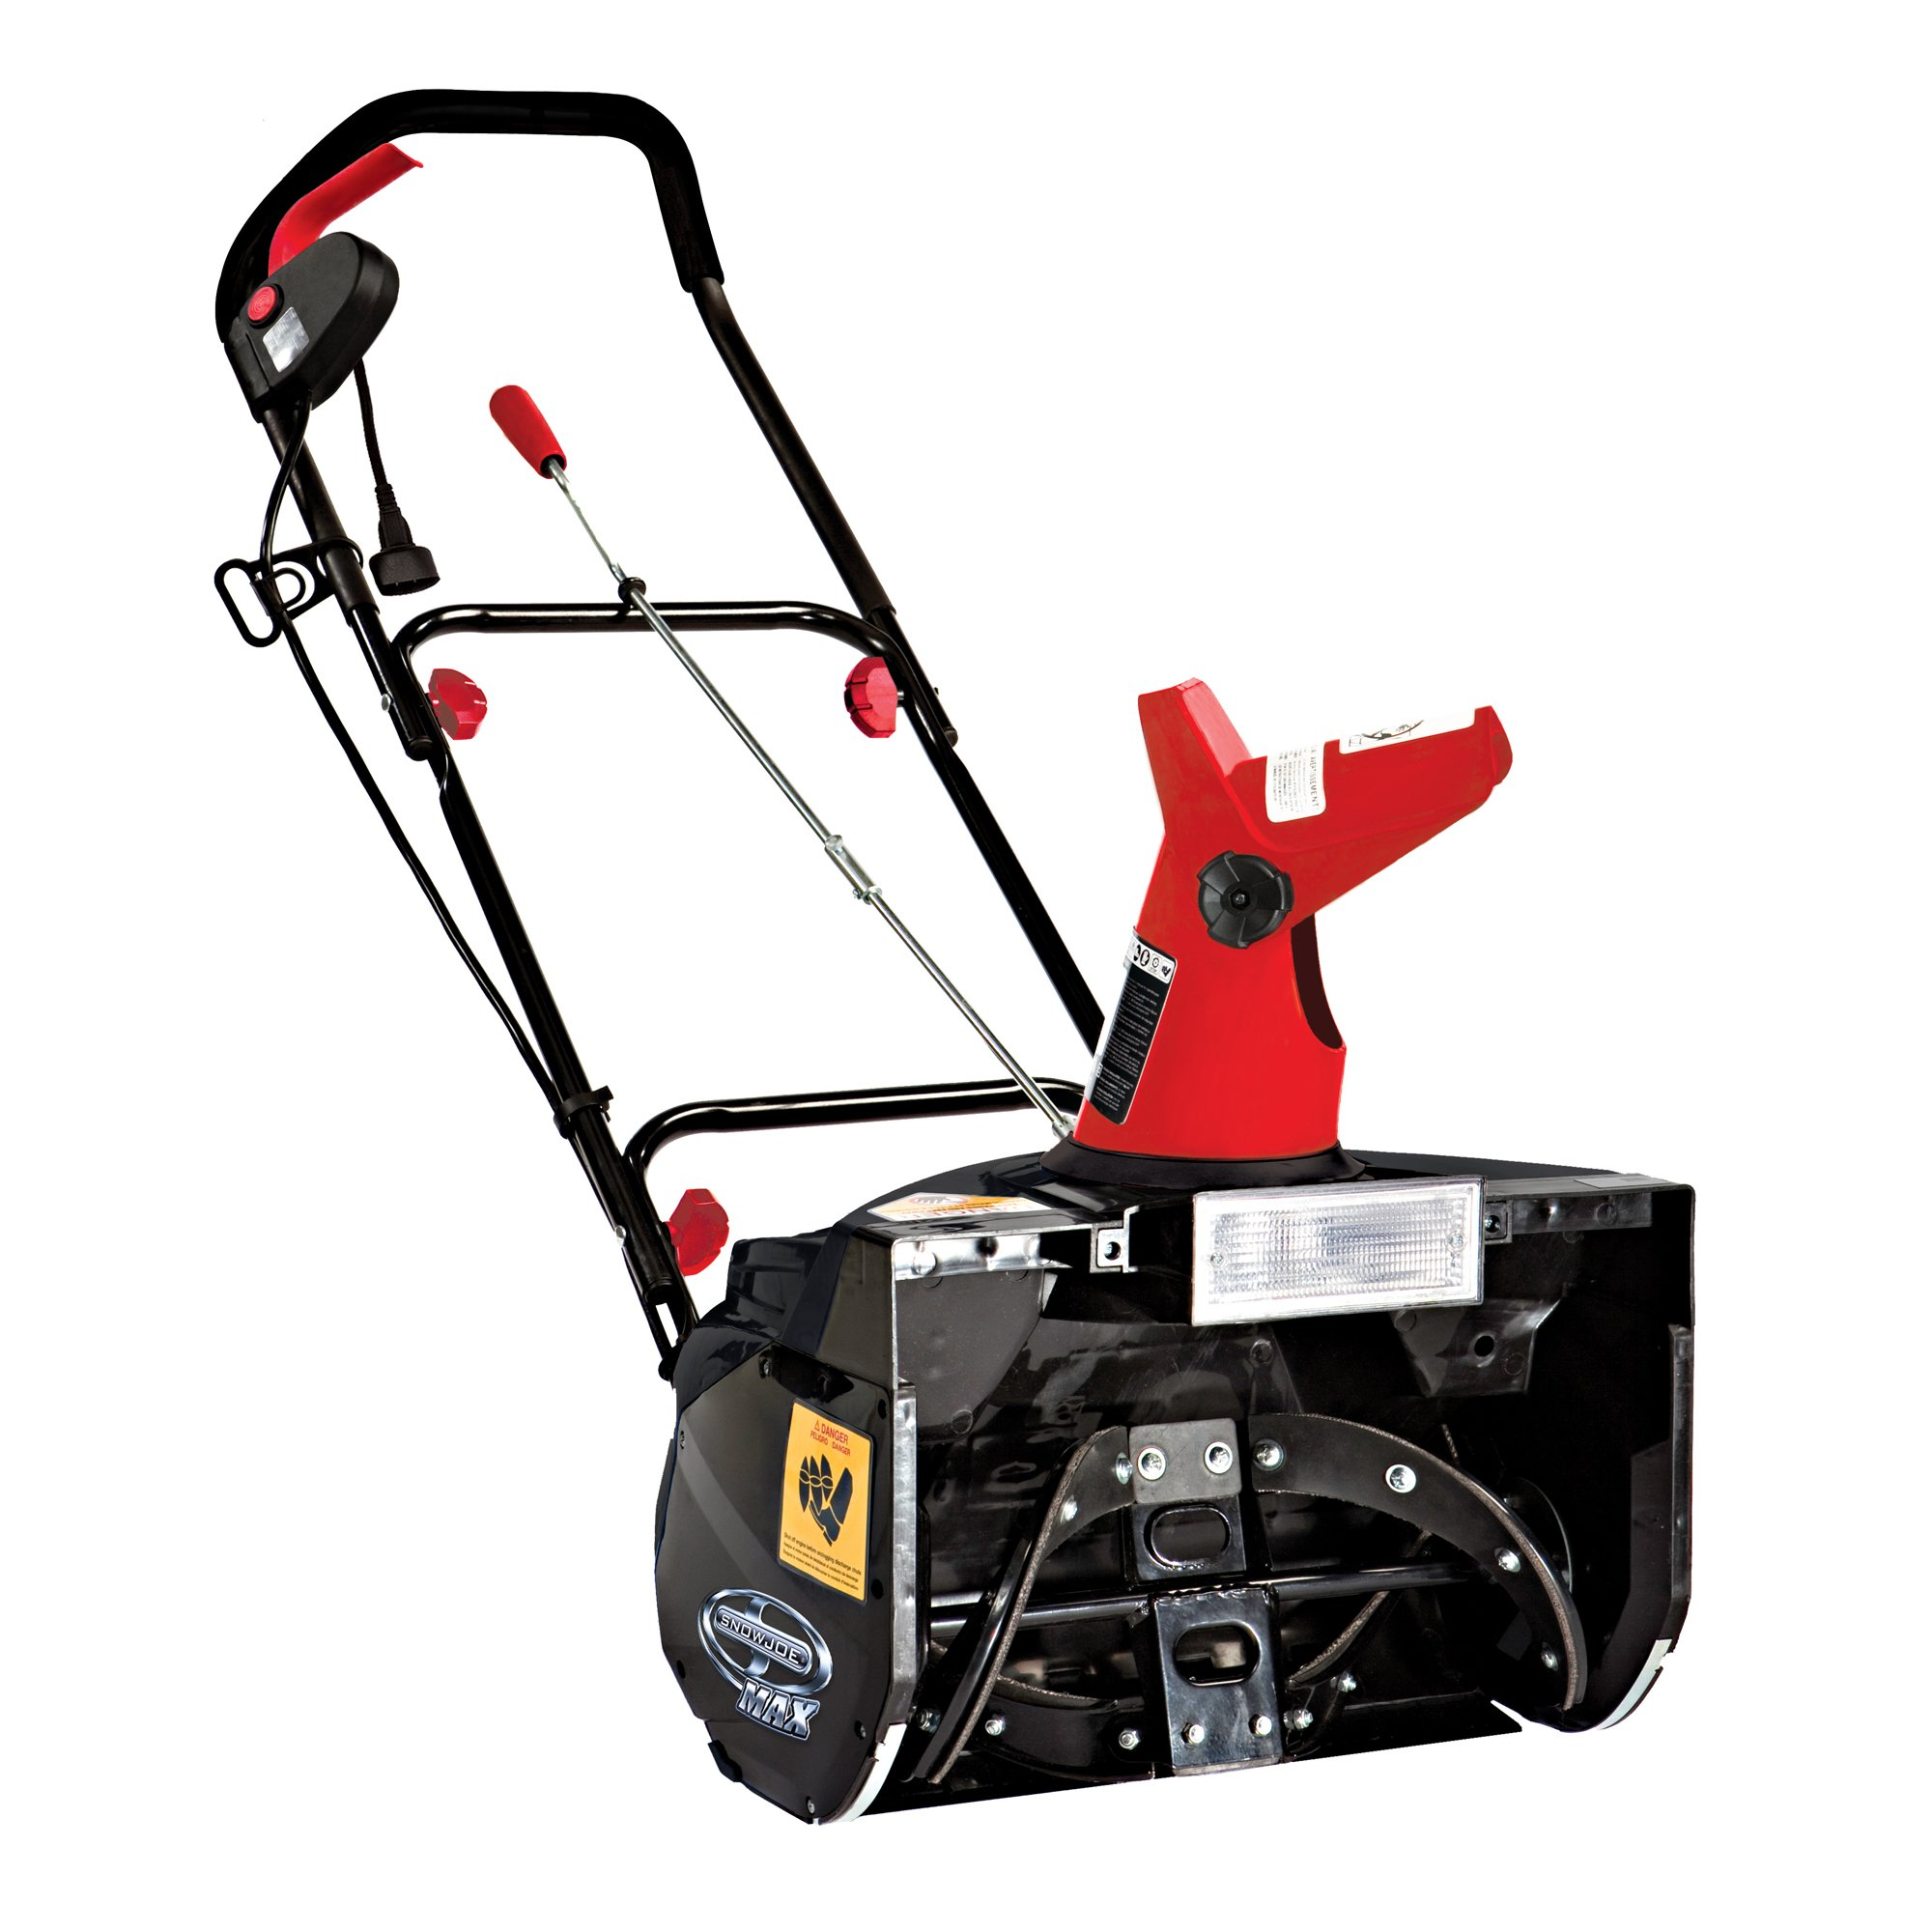 Snow Joe SJM988-RM Factory Refurbished Electric Snow Thrower with Light by Snow Joe